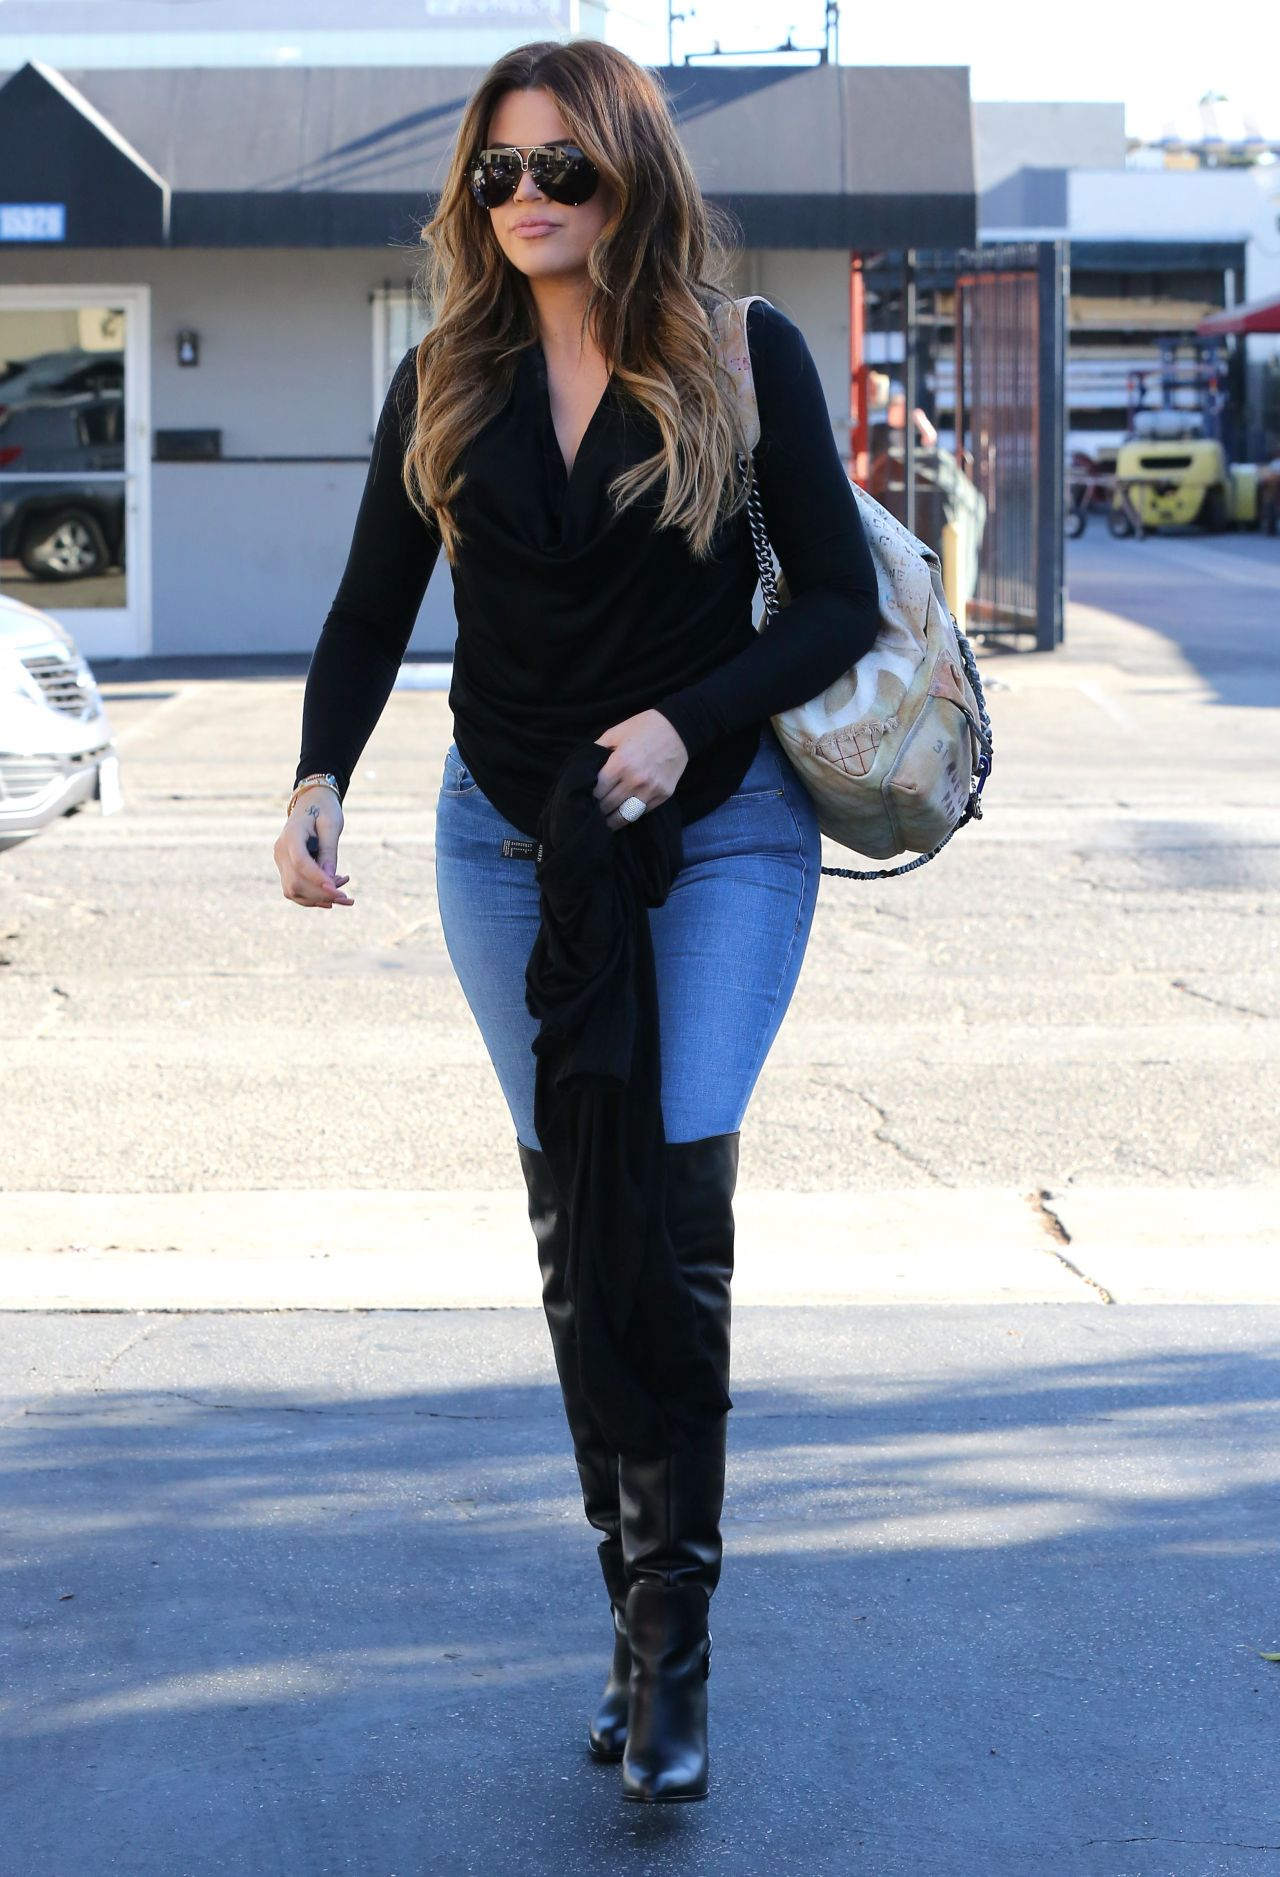 Khloe Kardashian in Jeans - Out in Beverly Hills - September 2014